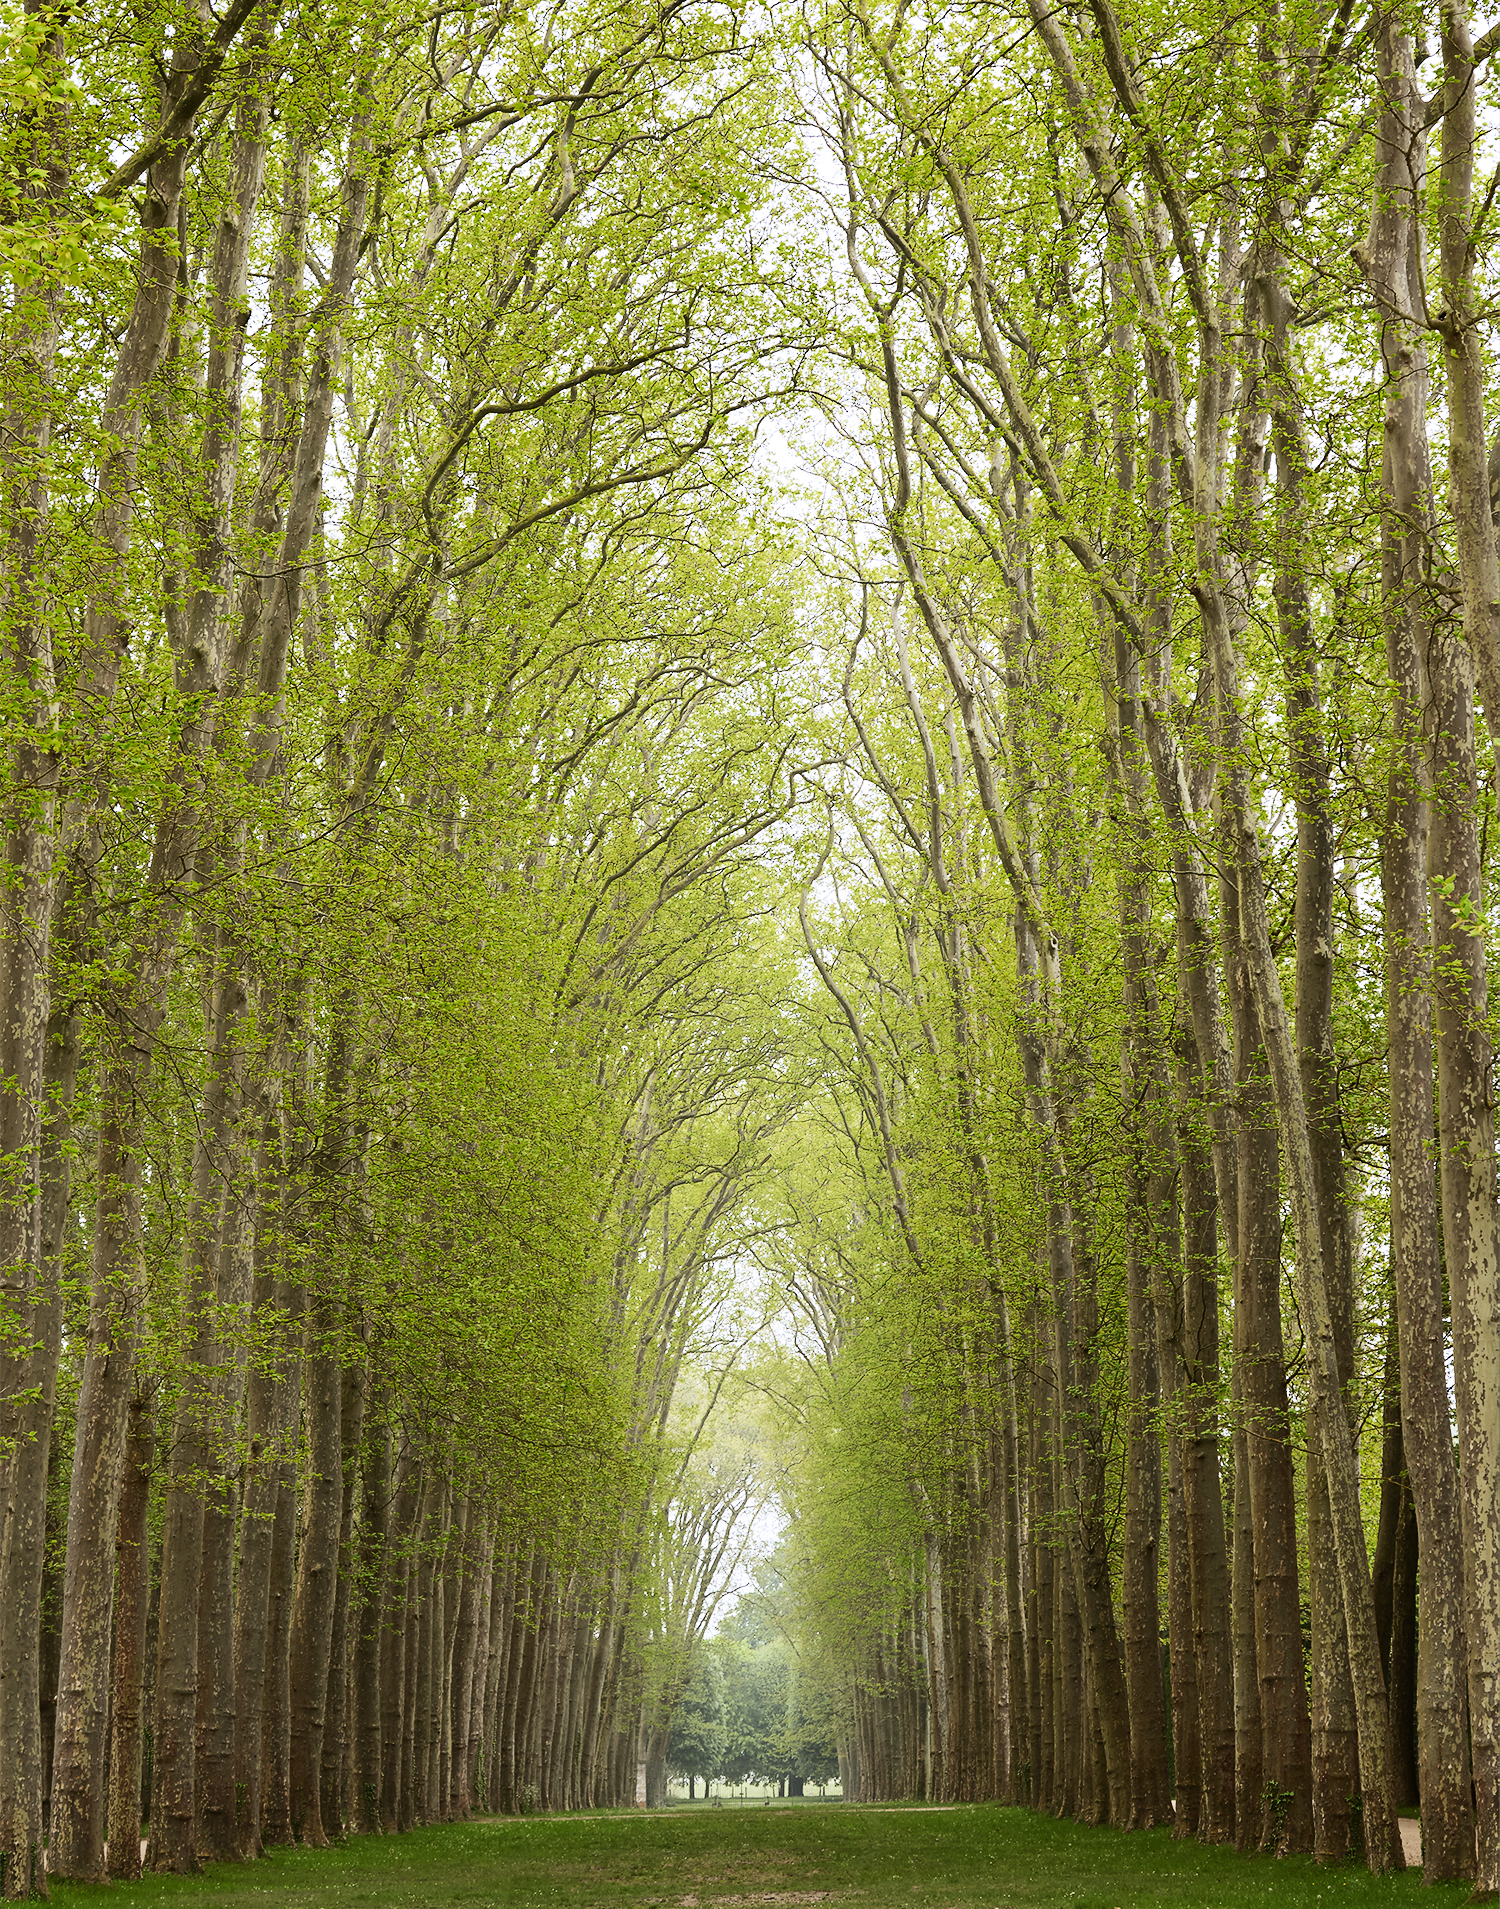 Trees in Versailles